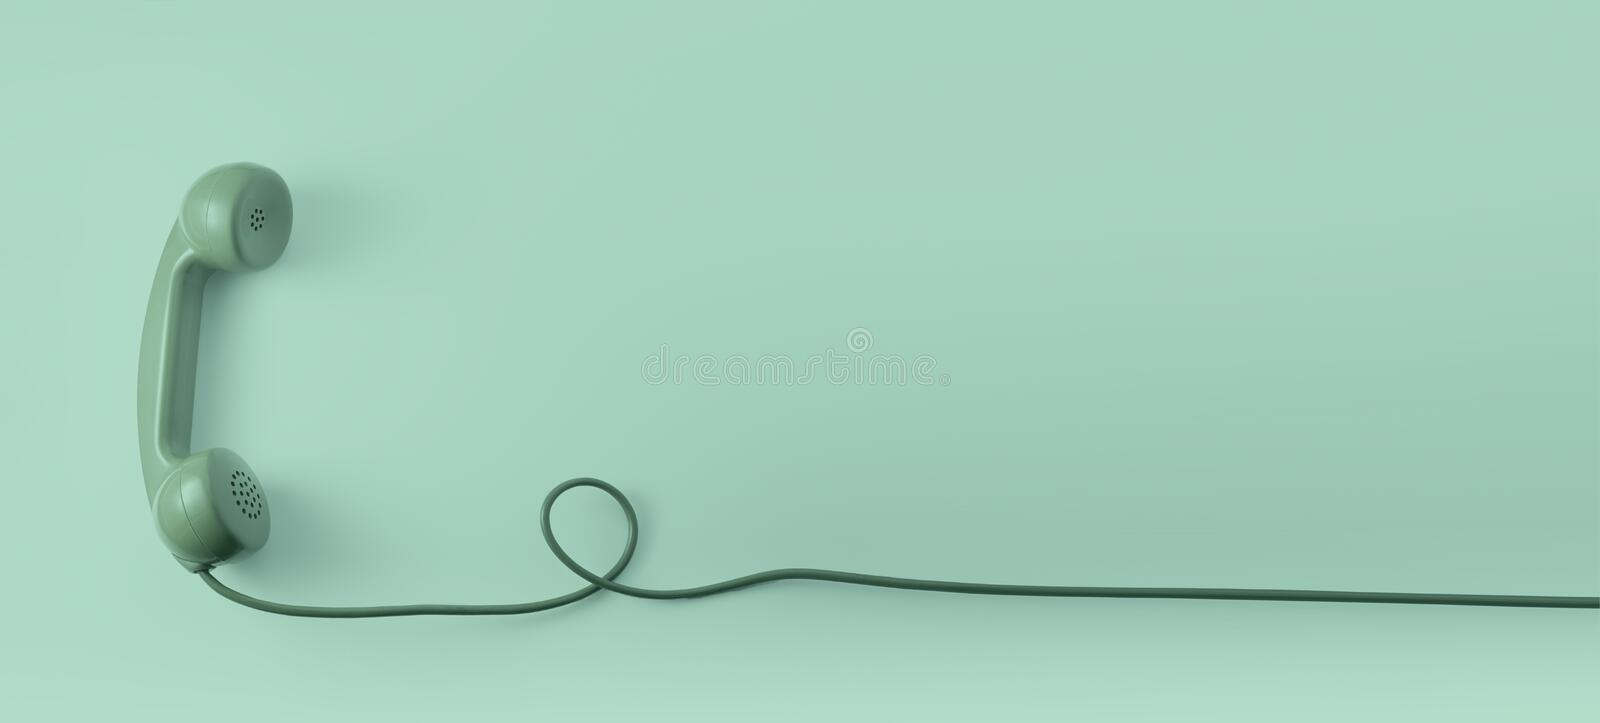 A green vintage dial telephone handset with green background. Business card stock photography